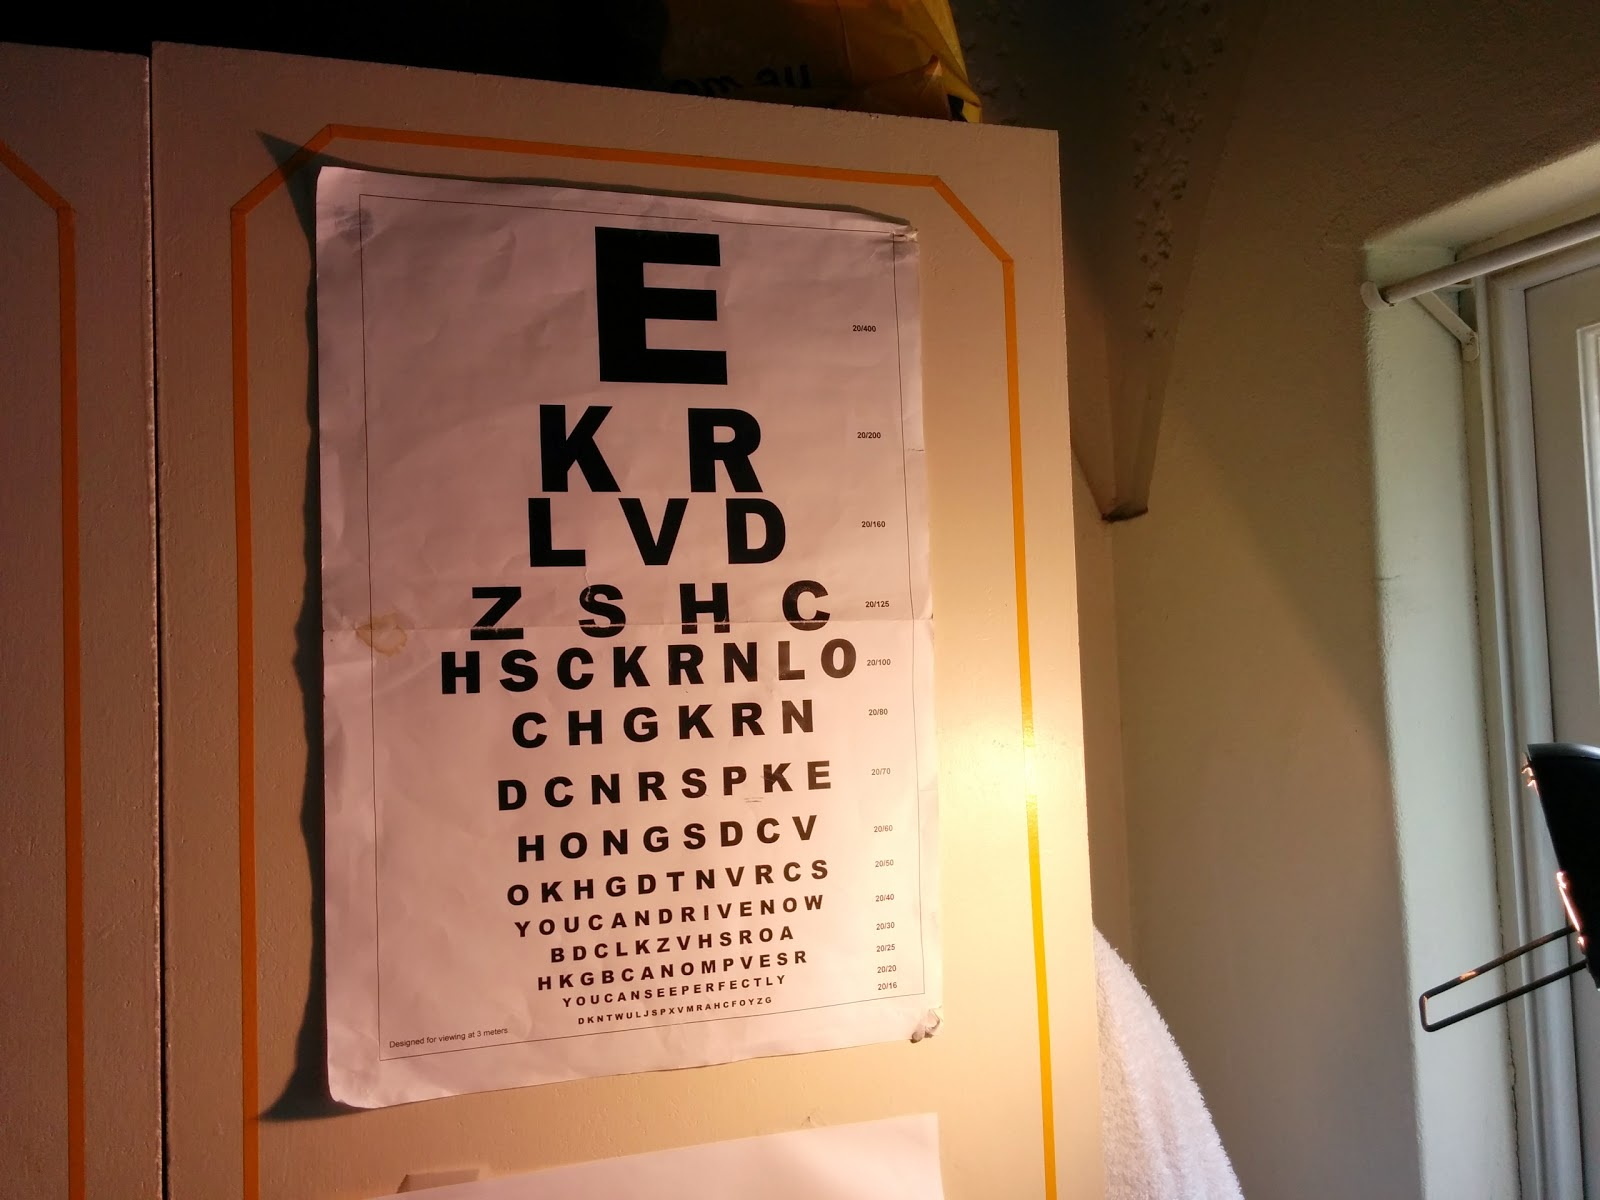 Eyefix experiment eye chart - using it to record the progress